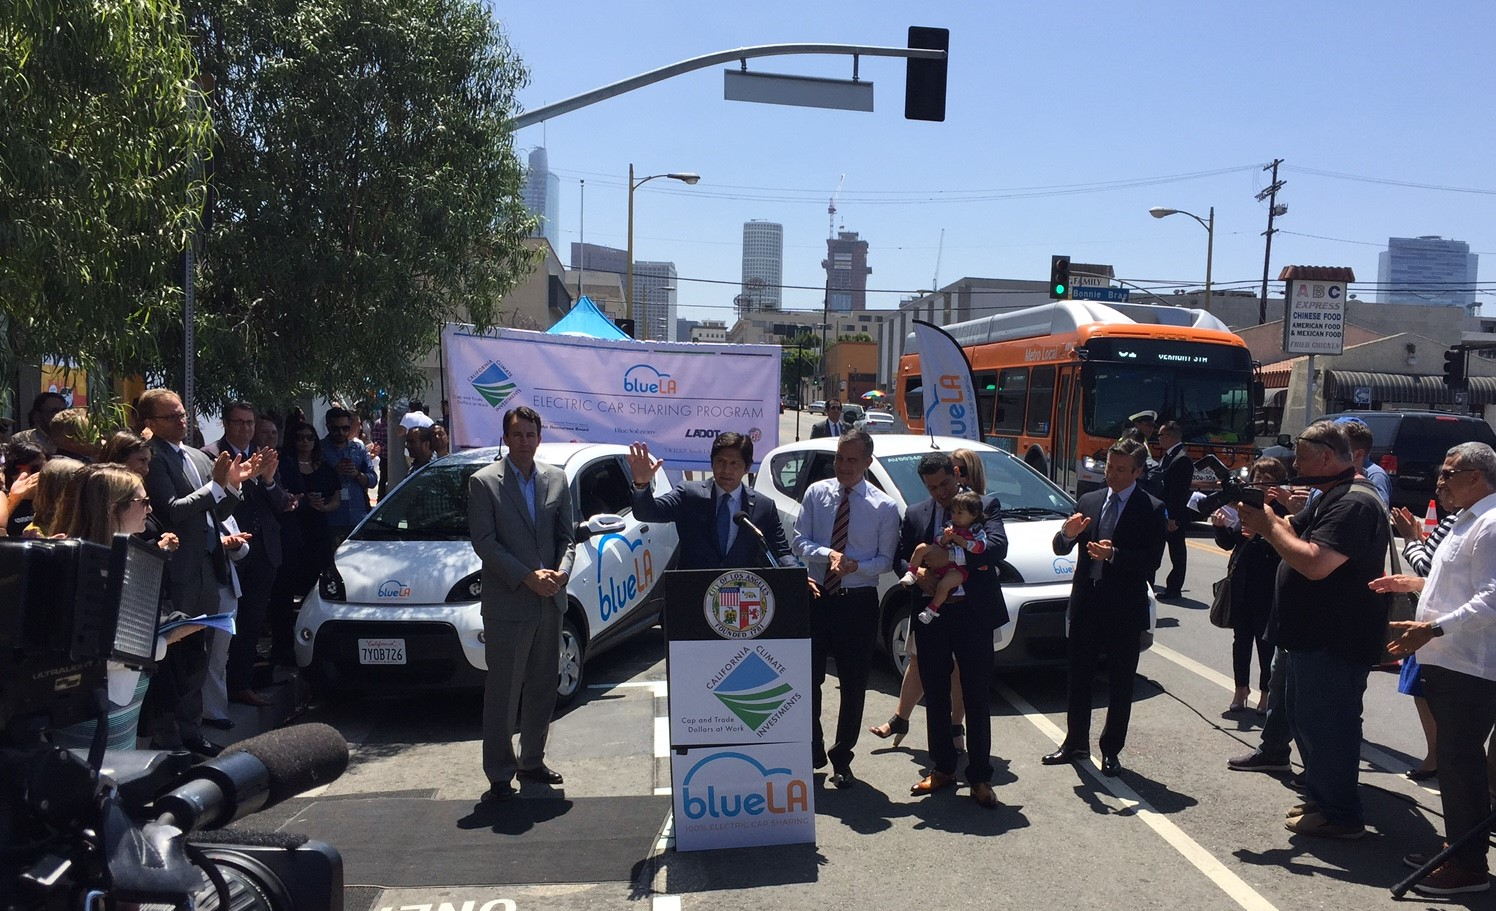 LADOT And BlueLA Partner For Low-Income Electric Car Share